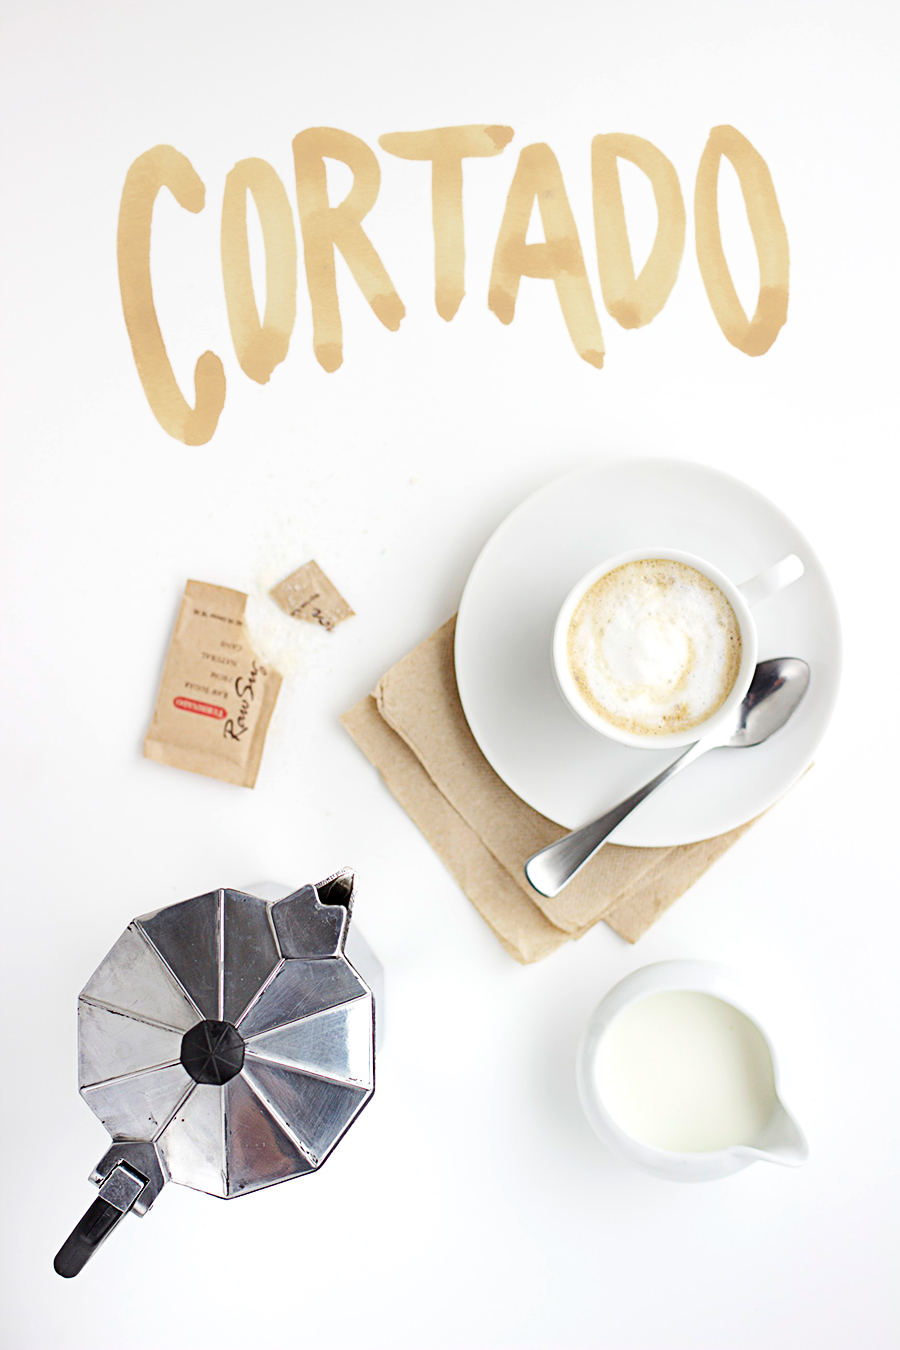 The Cortado. A Collaboration between The Artful Desperado and Alicia Carvalho | www.alicia-carvalho.com